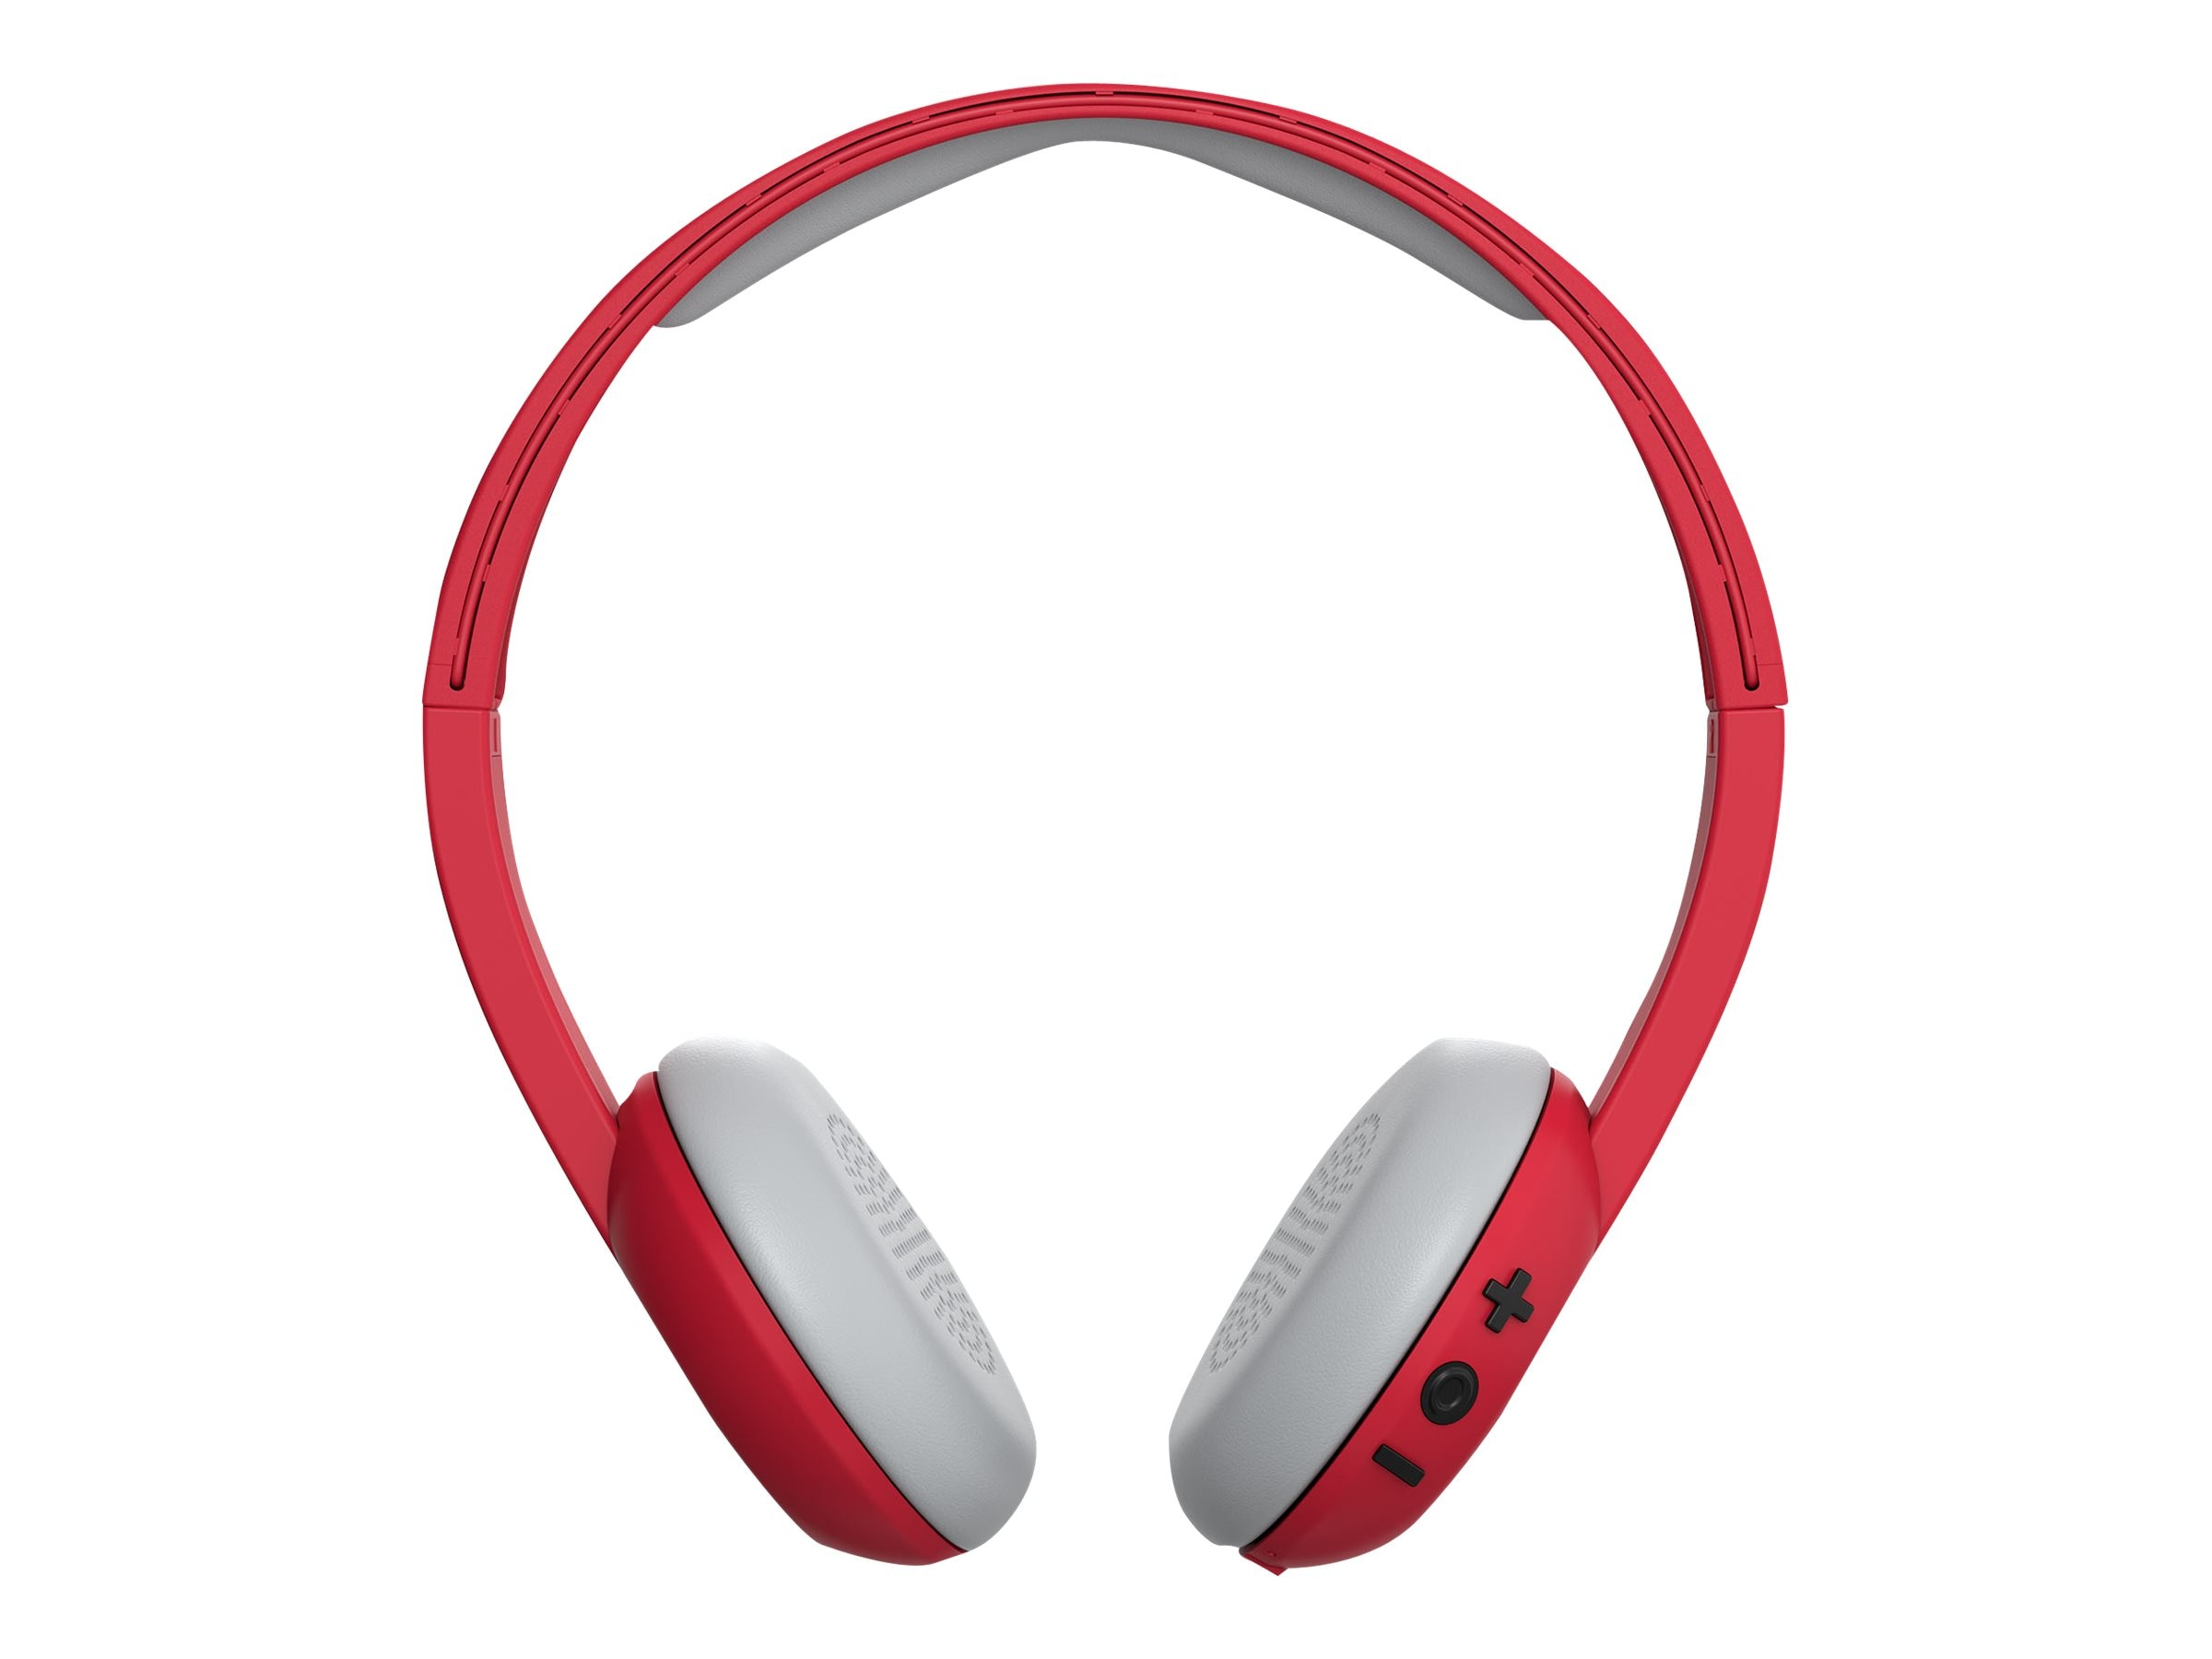 Skullcandy Uproar BT Headphones - Illfamed Red Black, S5URHW-462